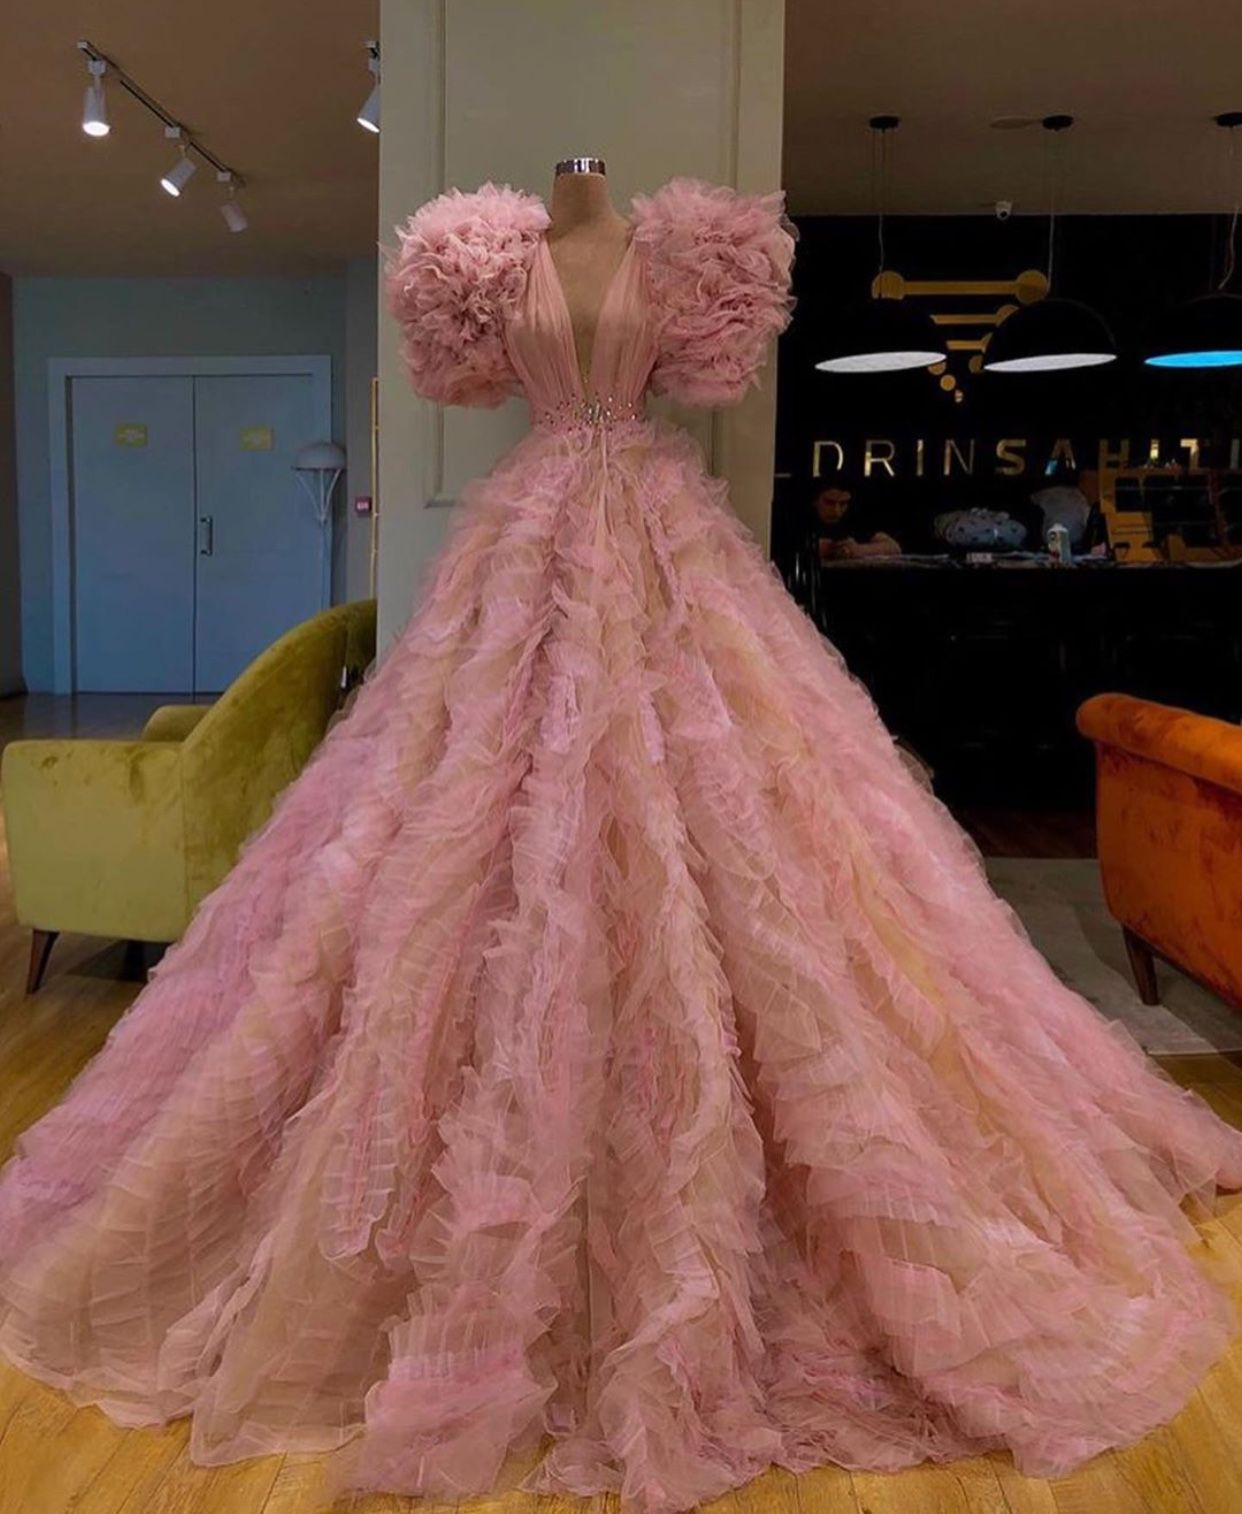 Pink Couture Gown Extra Fluffy Gowns Dresses Pretty Dresses [ 1514 x 1242 Pixel ]